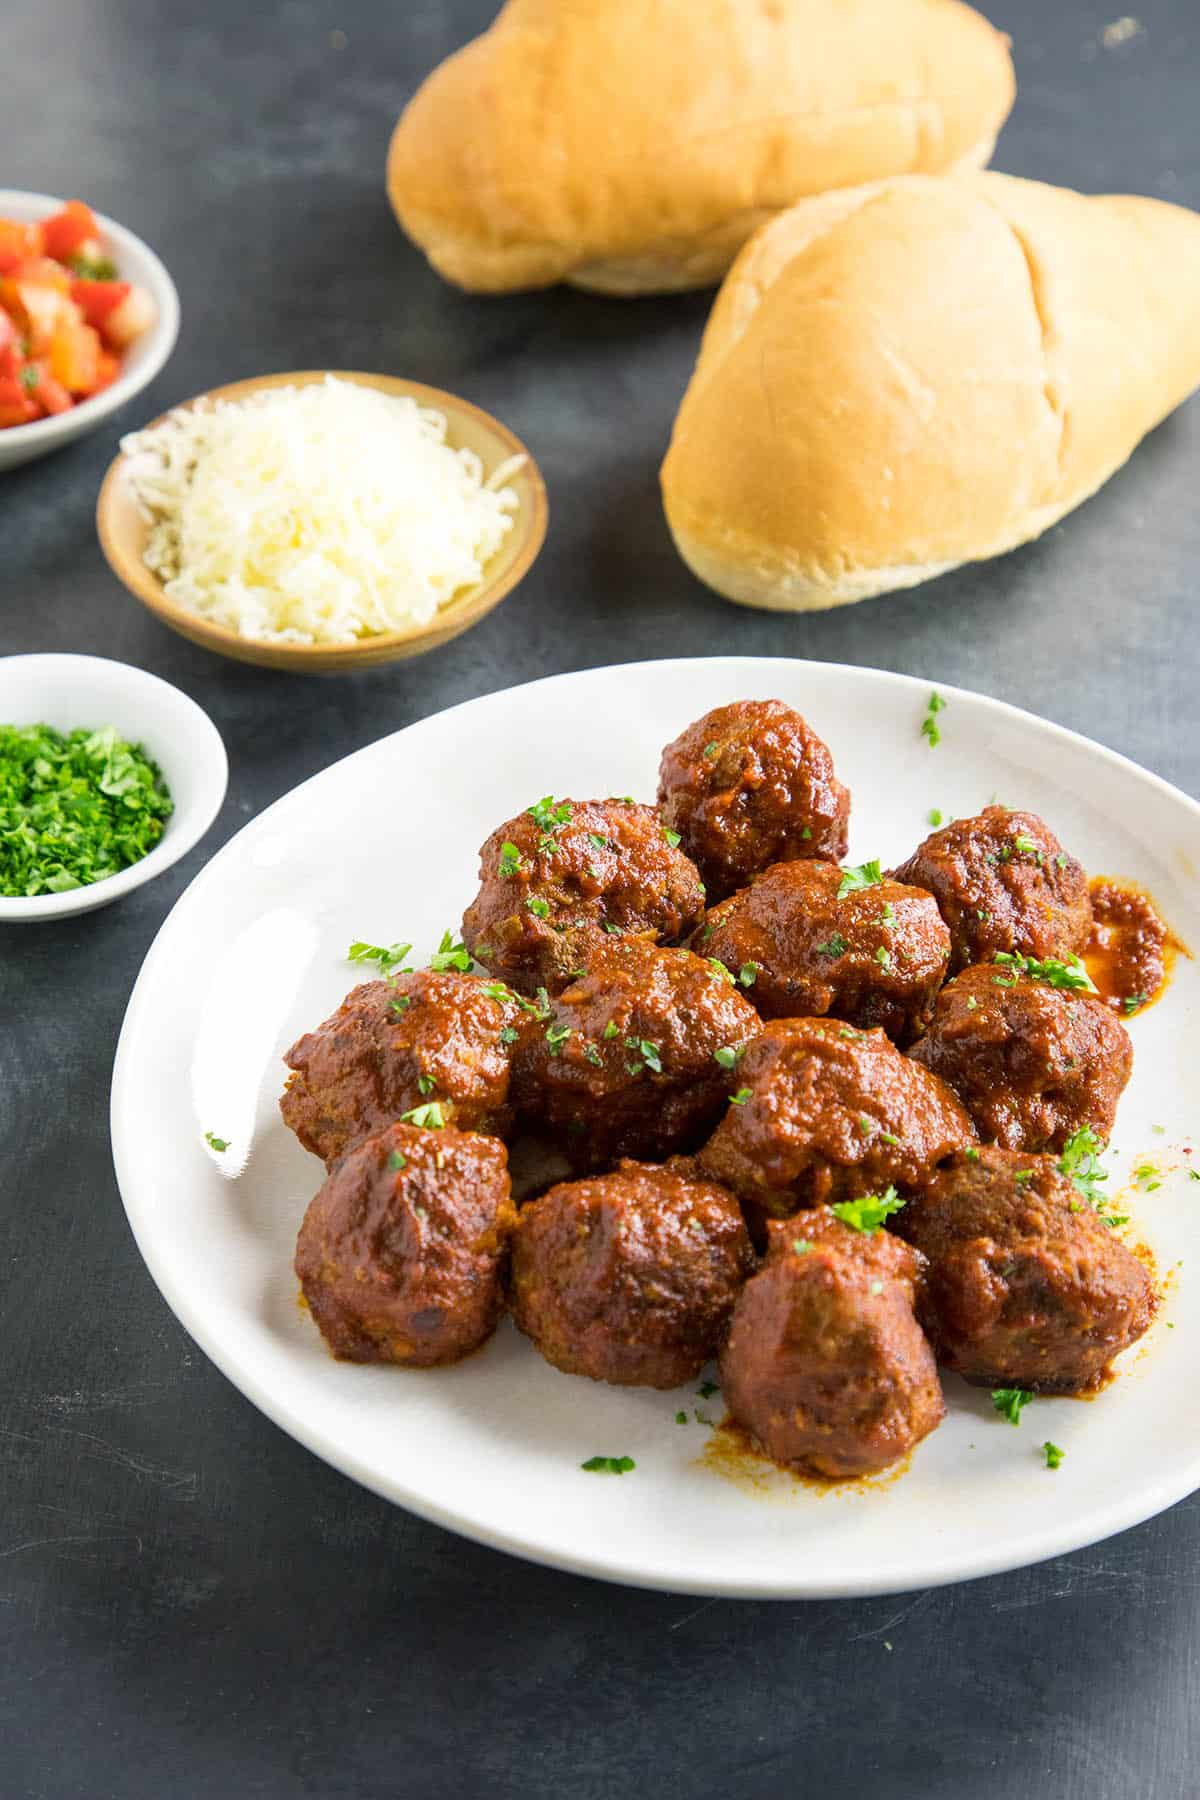 Spicy Meatballs Chipotle Lime Sauce Recipe - Serve them up on buns for a meatball sub sandwich.